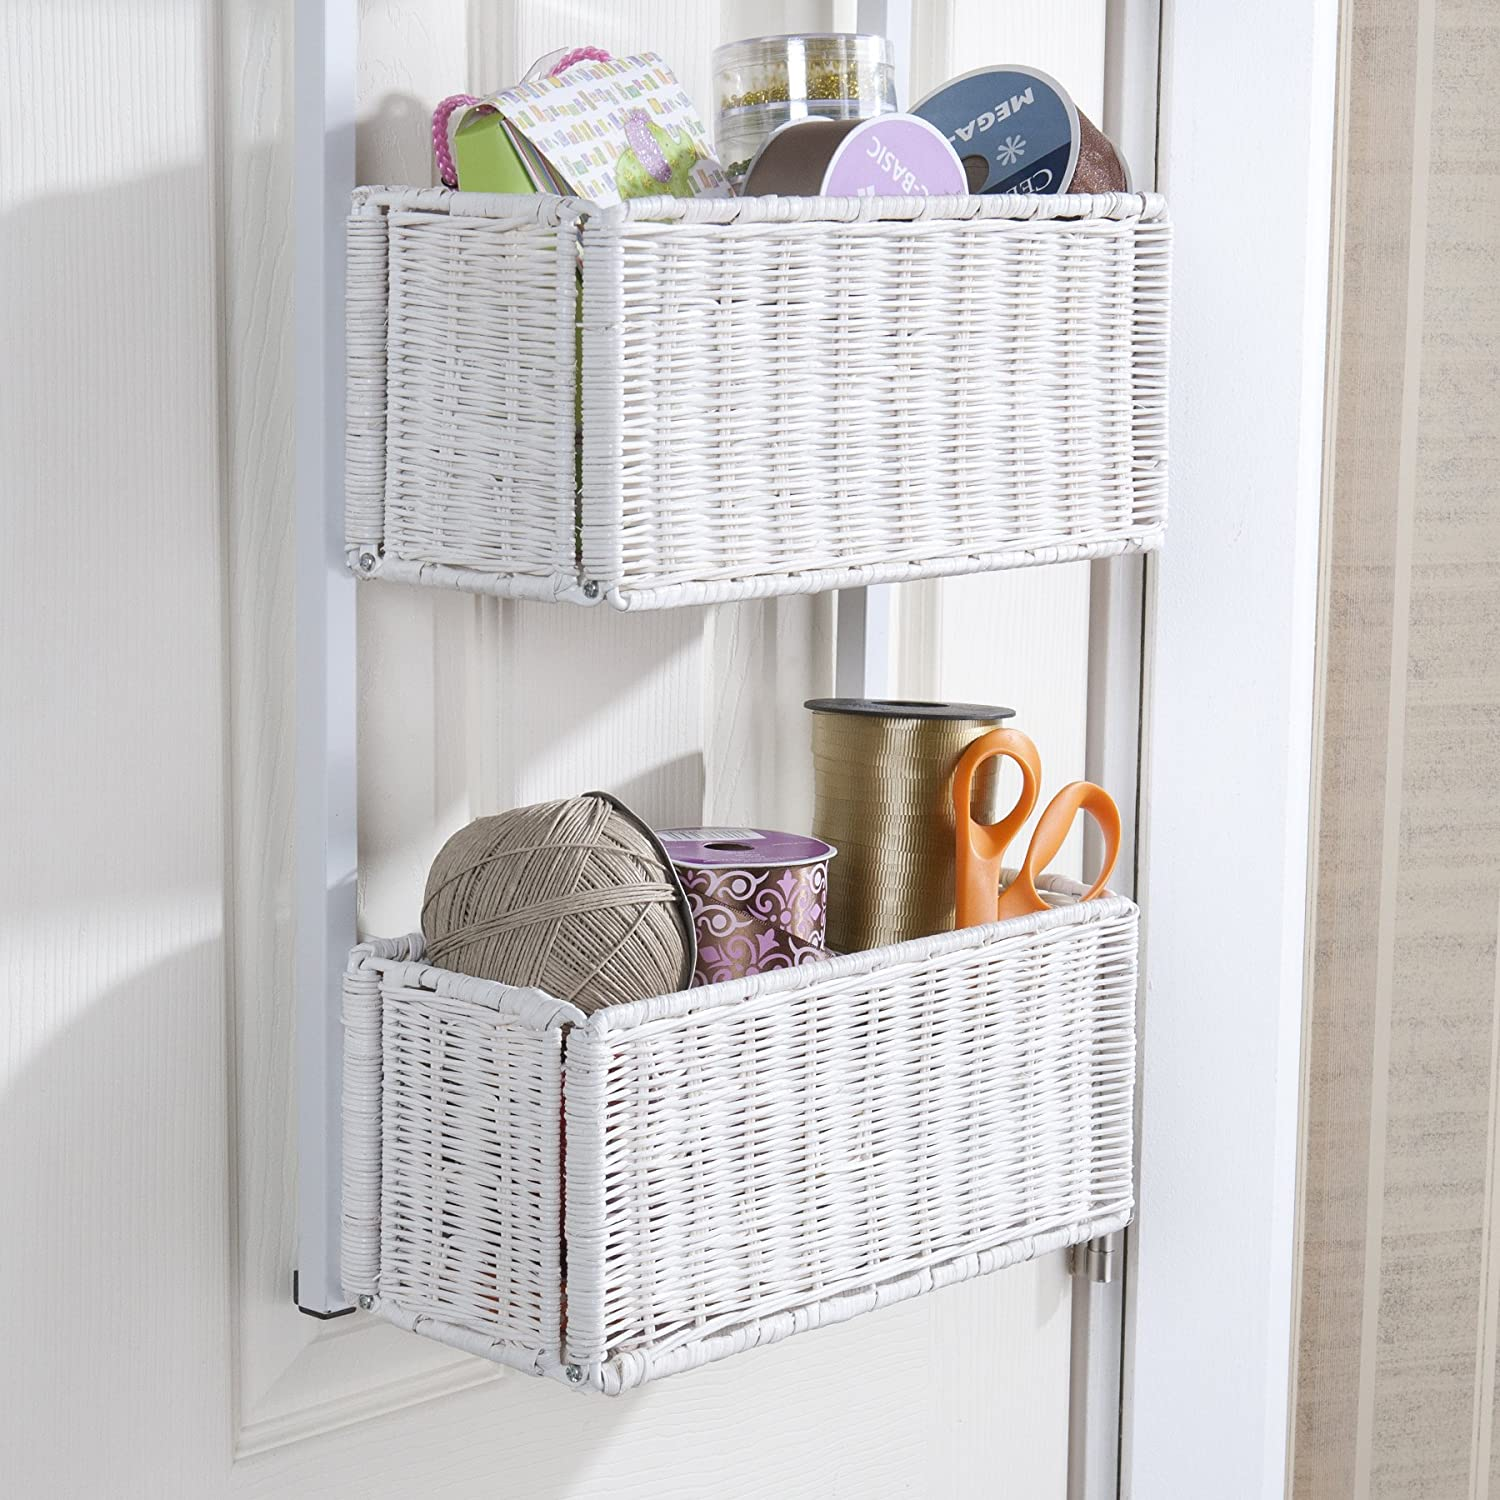 Amazon.com Southern Enterprise Over-The-Door 3-Tier Woven Basket Storage White Finish Home u0026 Kitchen : door basket - Pezcame.Com